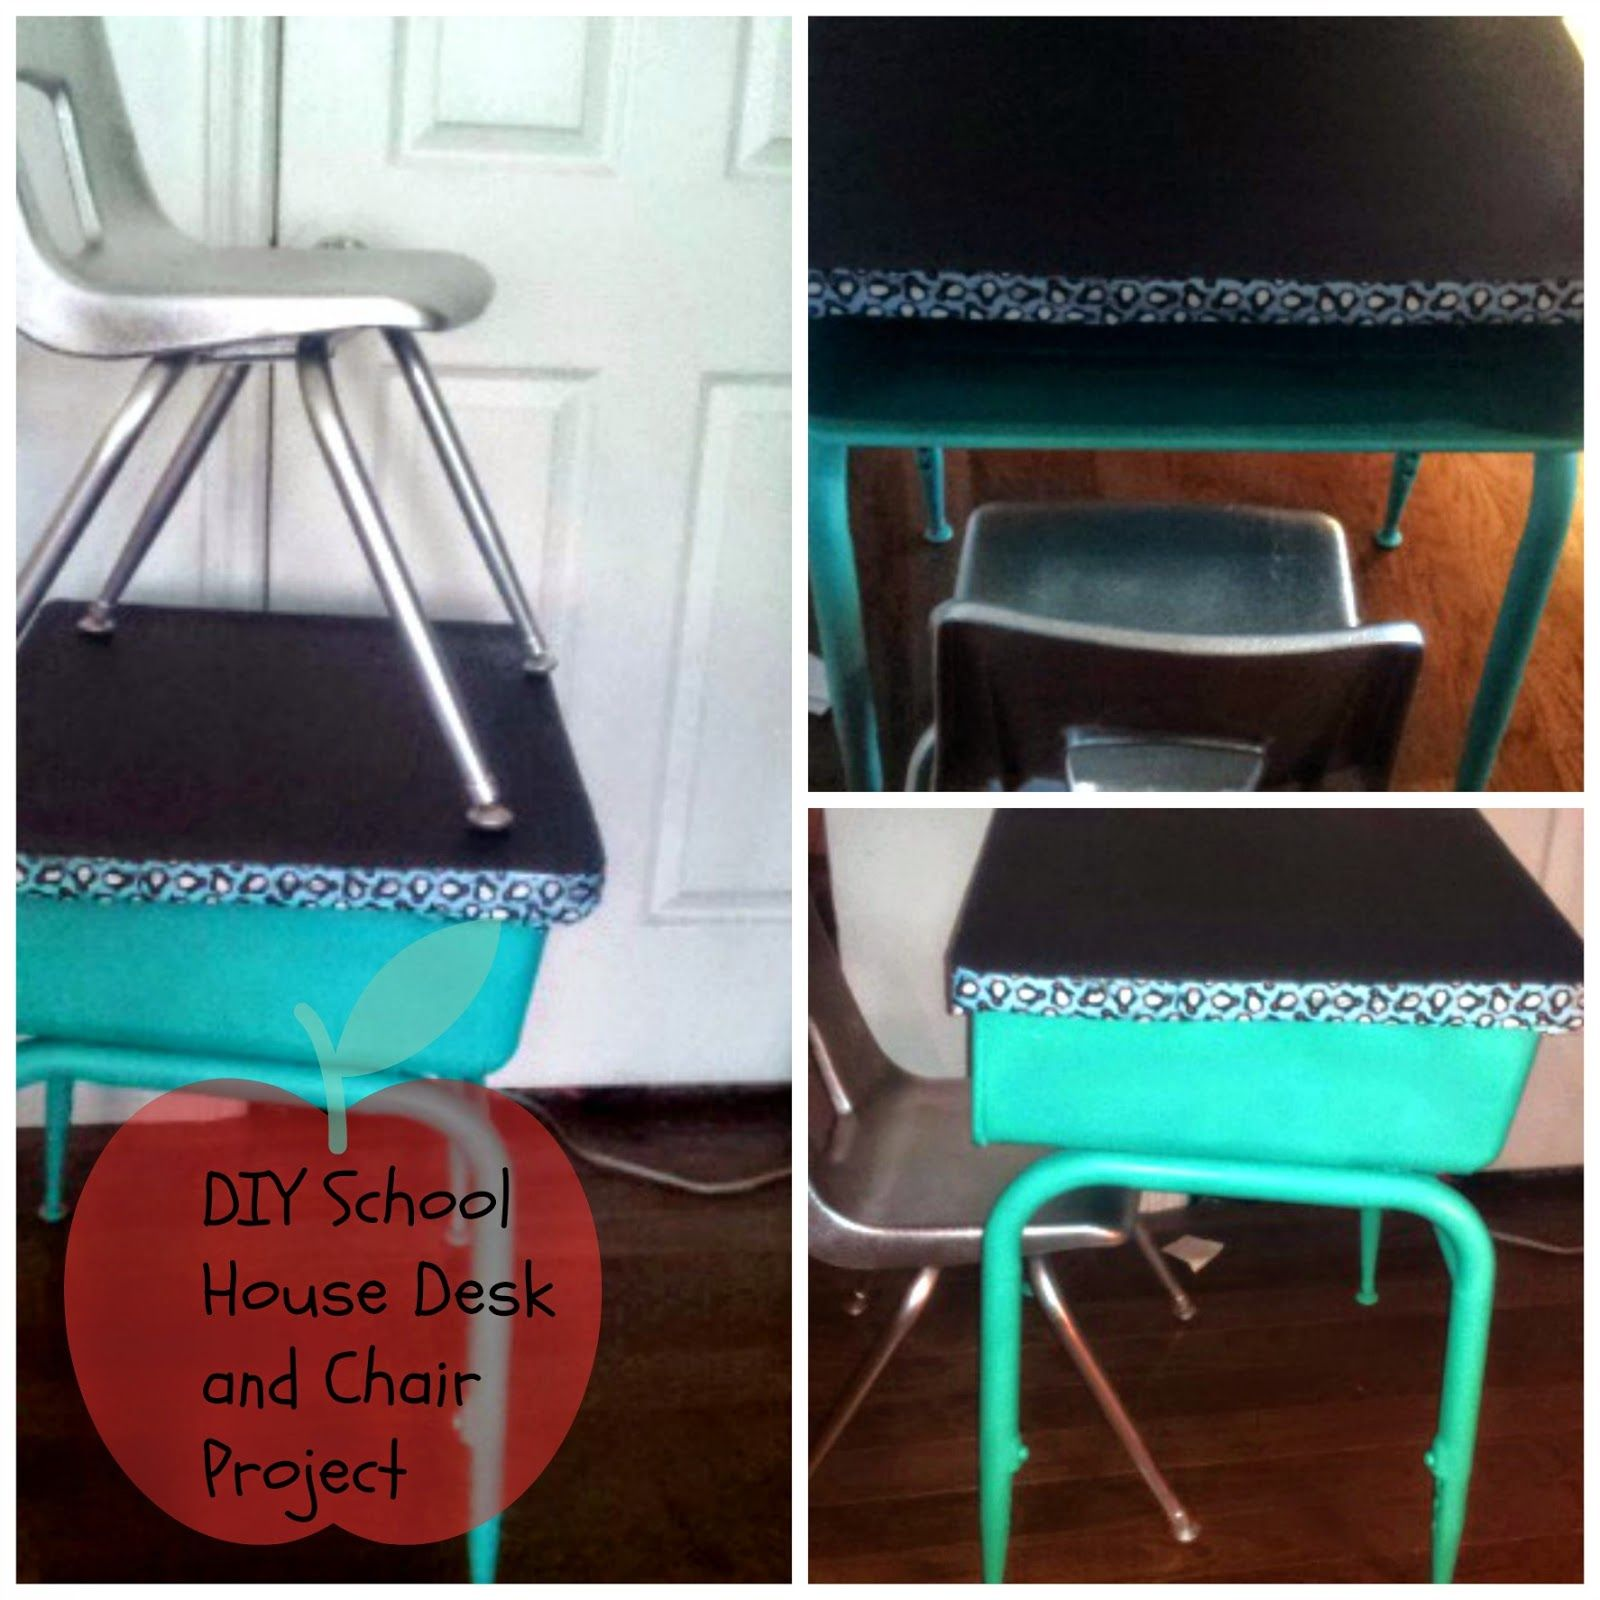 Nice Chalkboard Spray Paint Ideas Part - 5: DIY Making Over An Old School House Desk And Chair With Spray Paint And Chalkboard  Paint